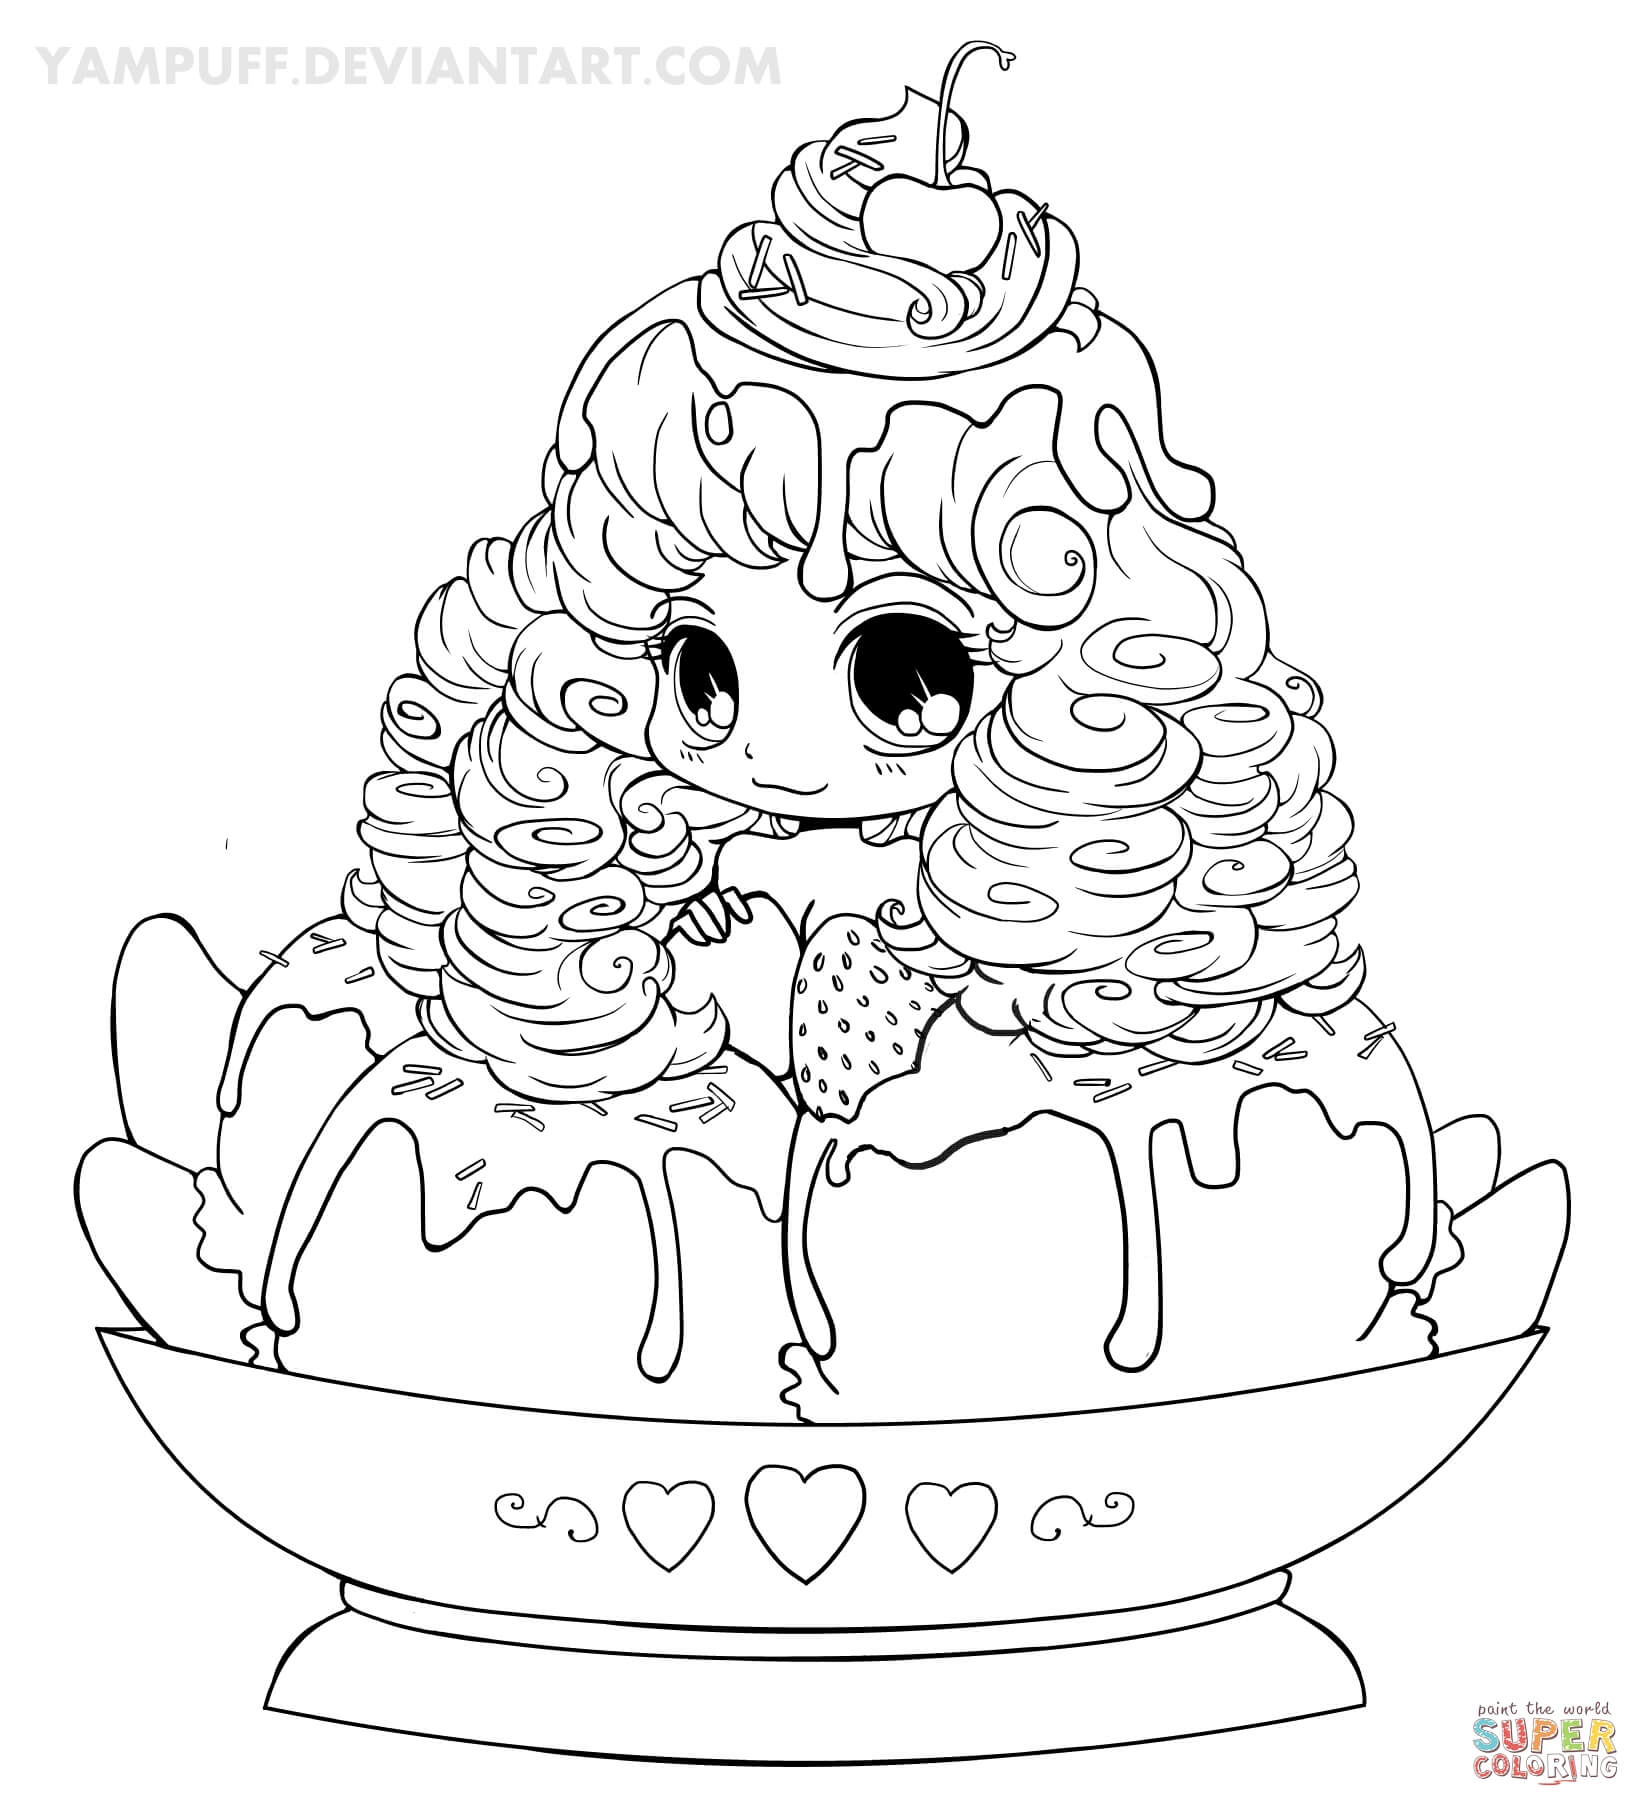 Chibi Popcorn Girl Coloring Page Free Printable Coloring Pages